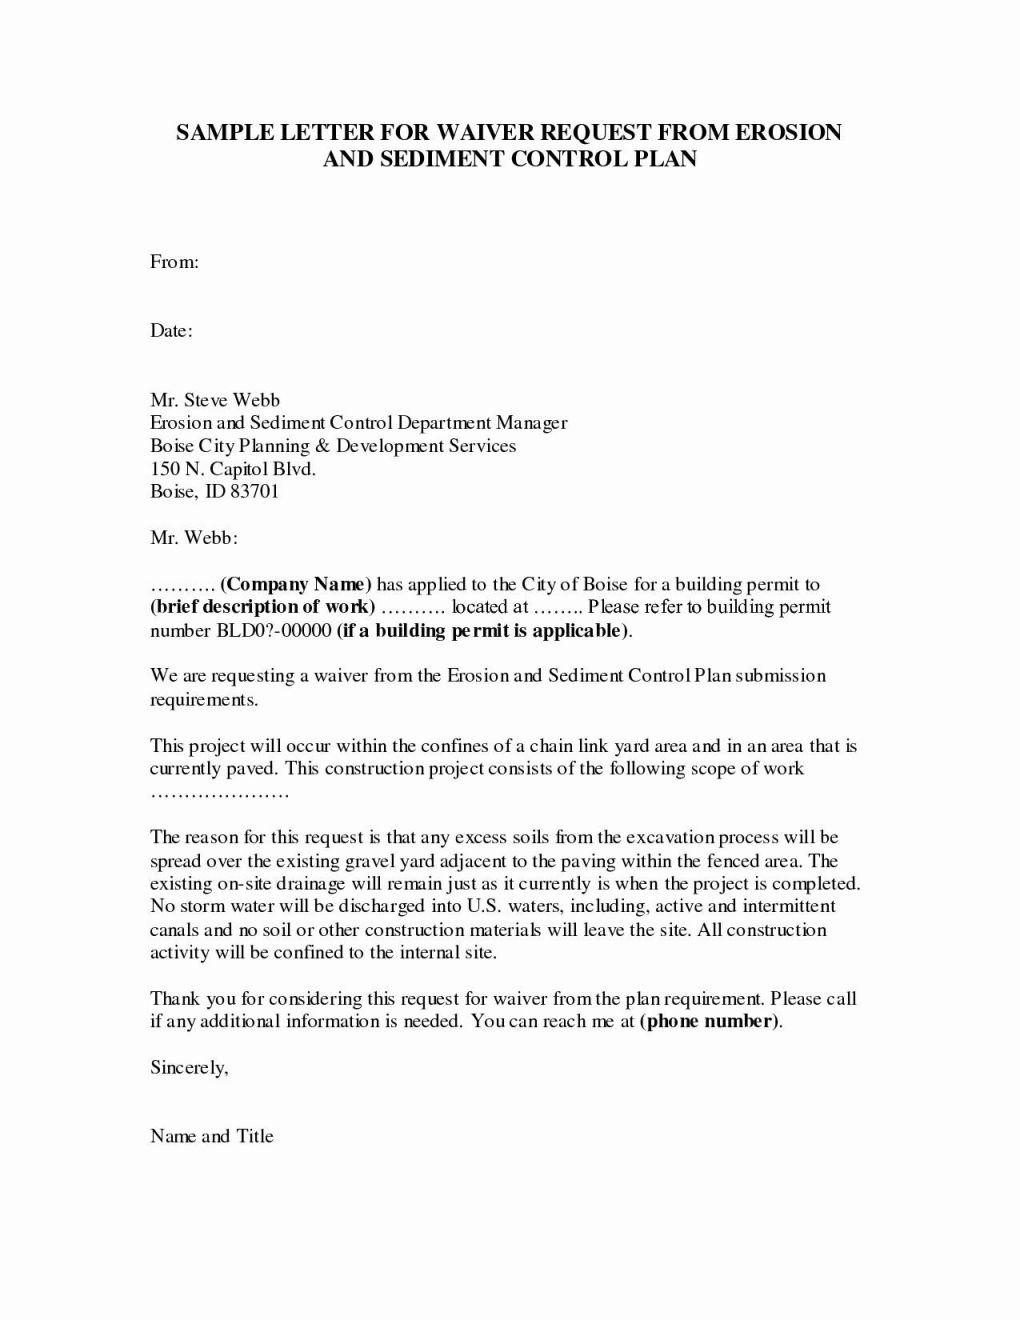 offer to purchase letter template example-Luxury Inspirational Home Fer Letter Template fer To Purchase Template vl6 16-q